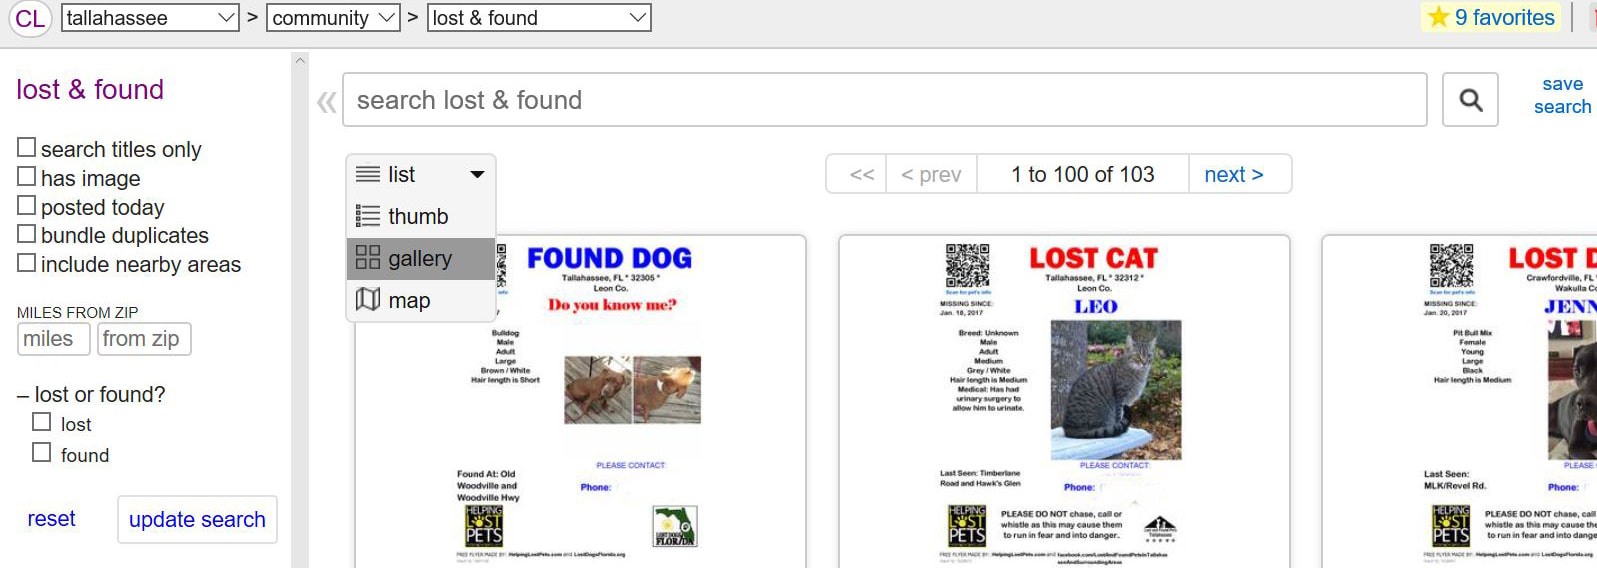 Craigslist Sarasota Bradenton >> Craigslist Florida Cities Lost Dogs Florida